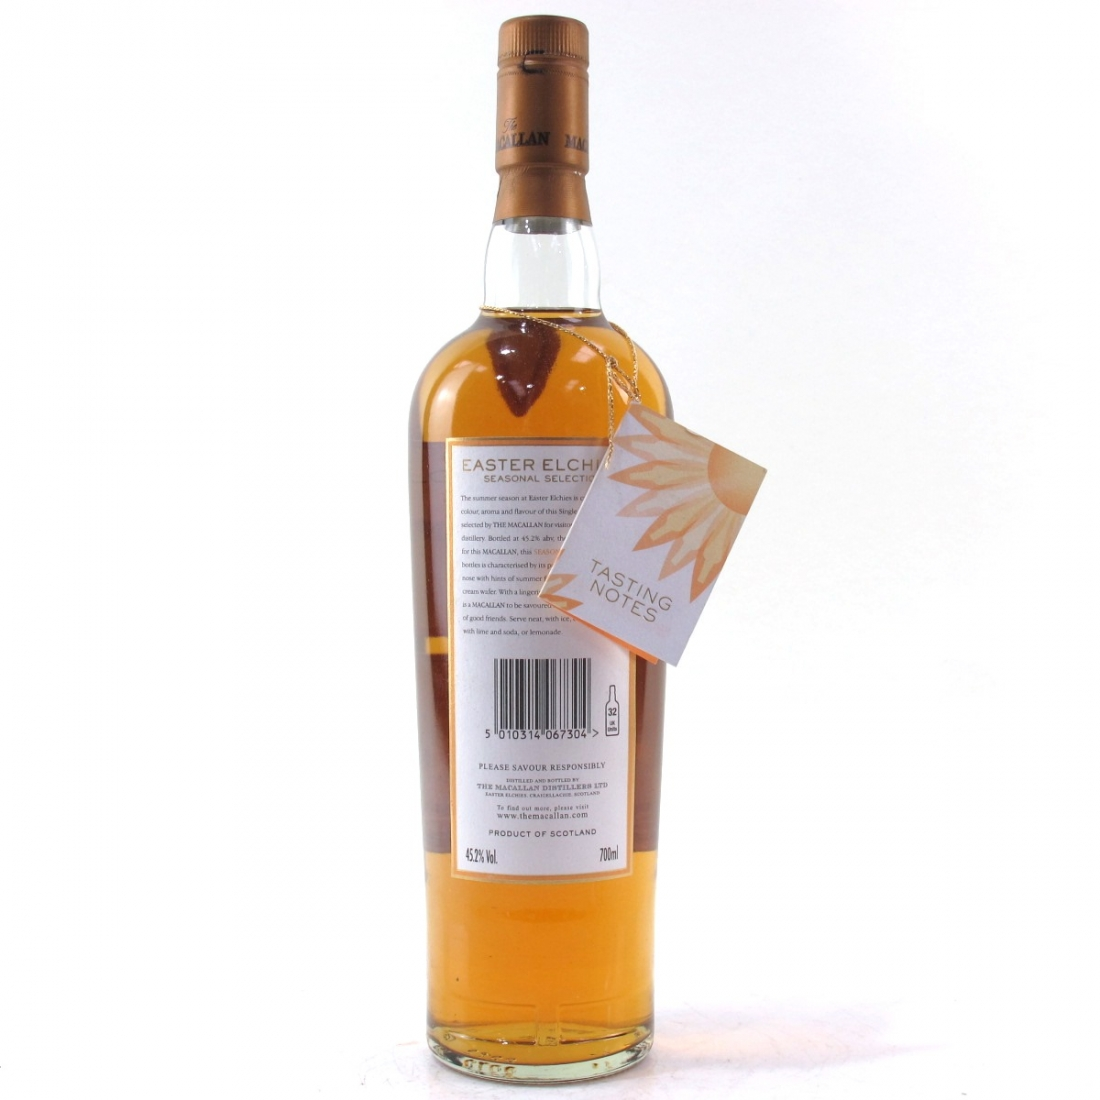 Macallan 8 Year Old Easter Elchies Seasonal Selection / Summer